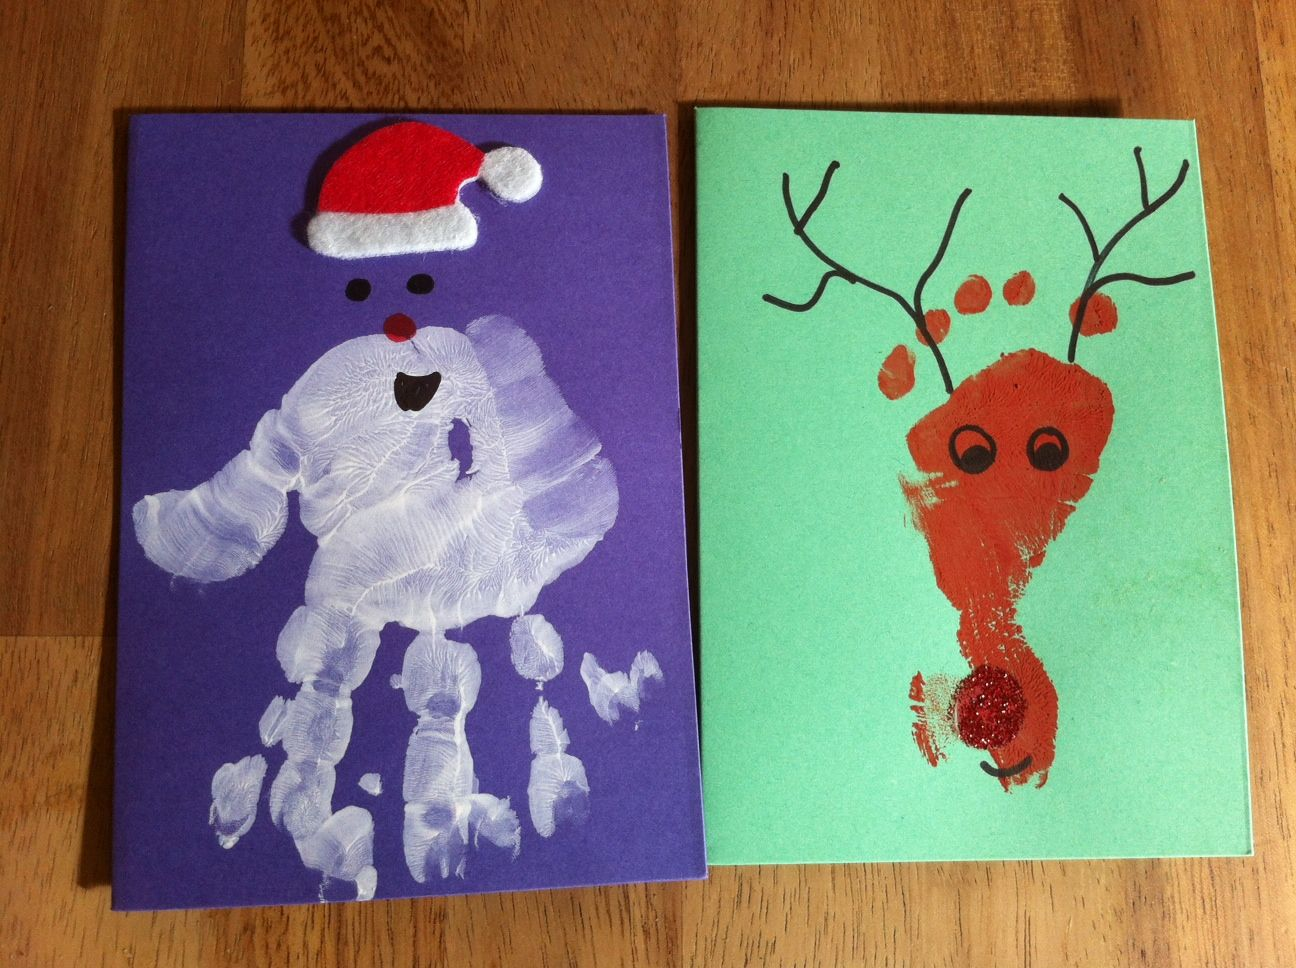 Christmas Craft Ideas For 3 Year Olds Part - 36: This Yearu0027s Christmas Cards! Certainly Not Perfect, But Easy And Fun To  Make With